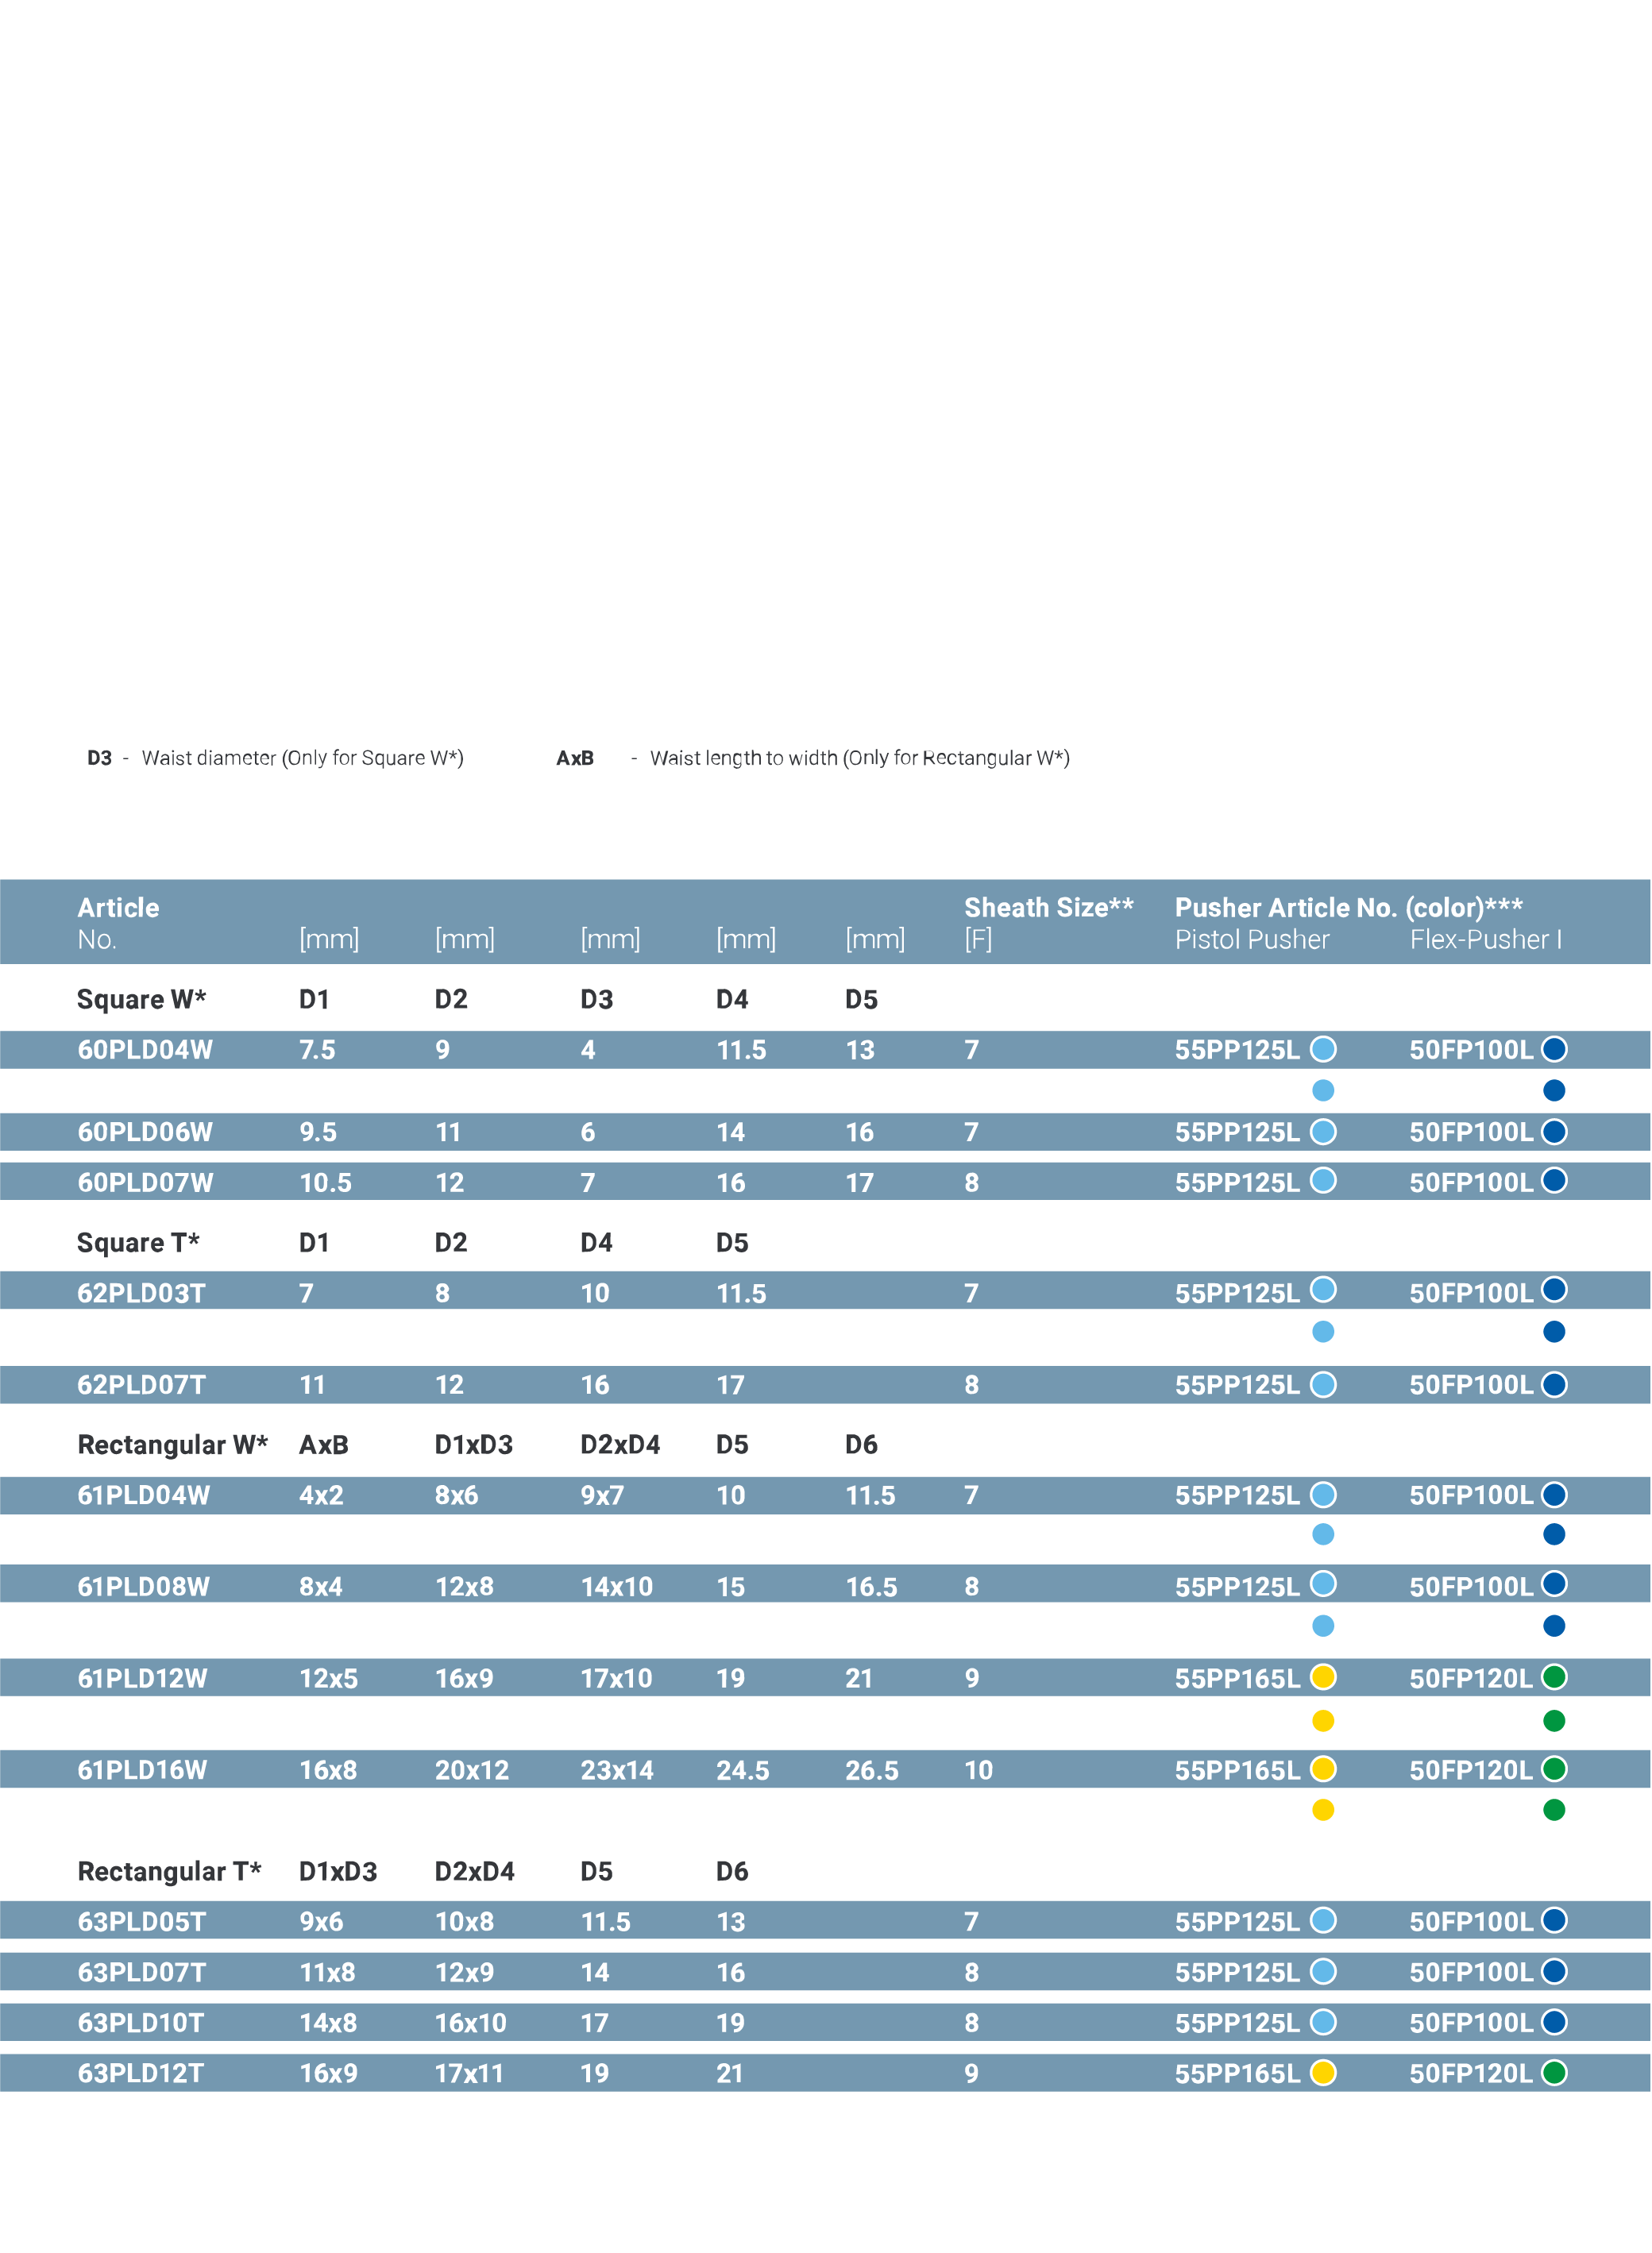 pld product specifications